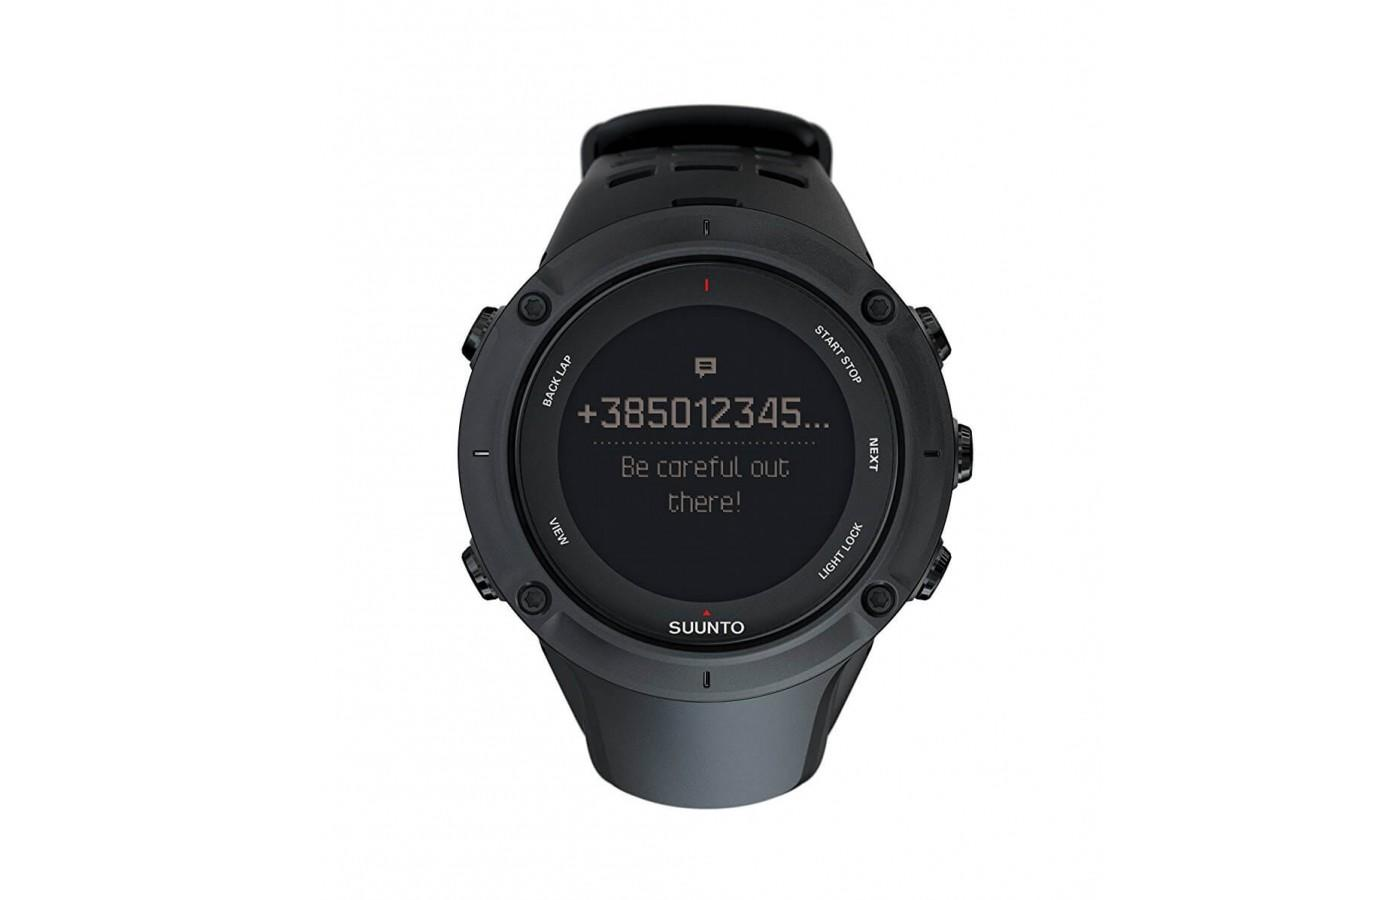 Suunto Ambit3 Peak helps the user navigate back through their course